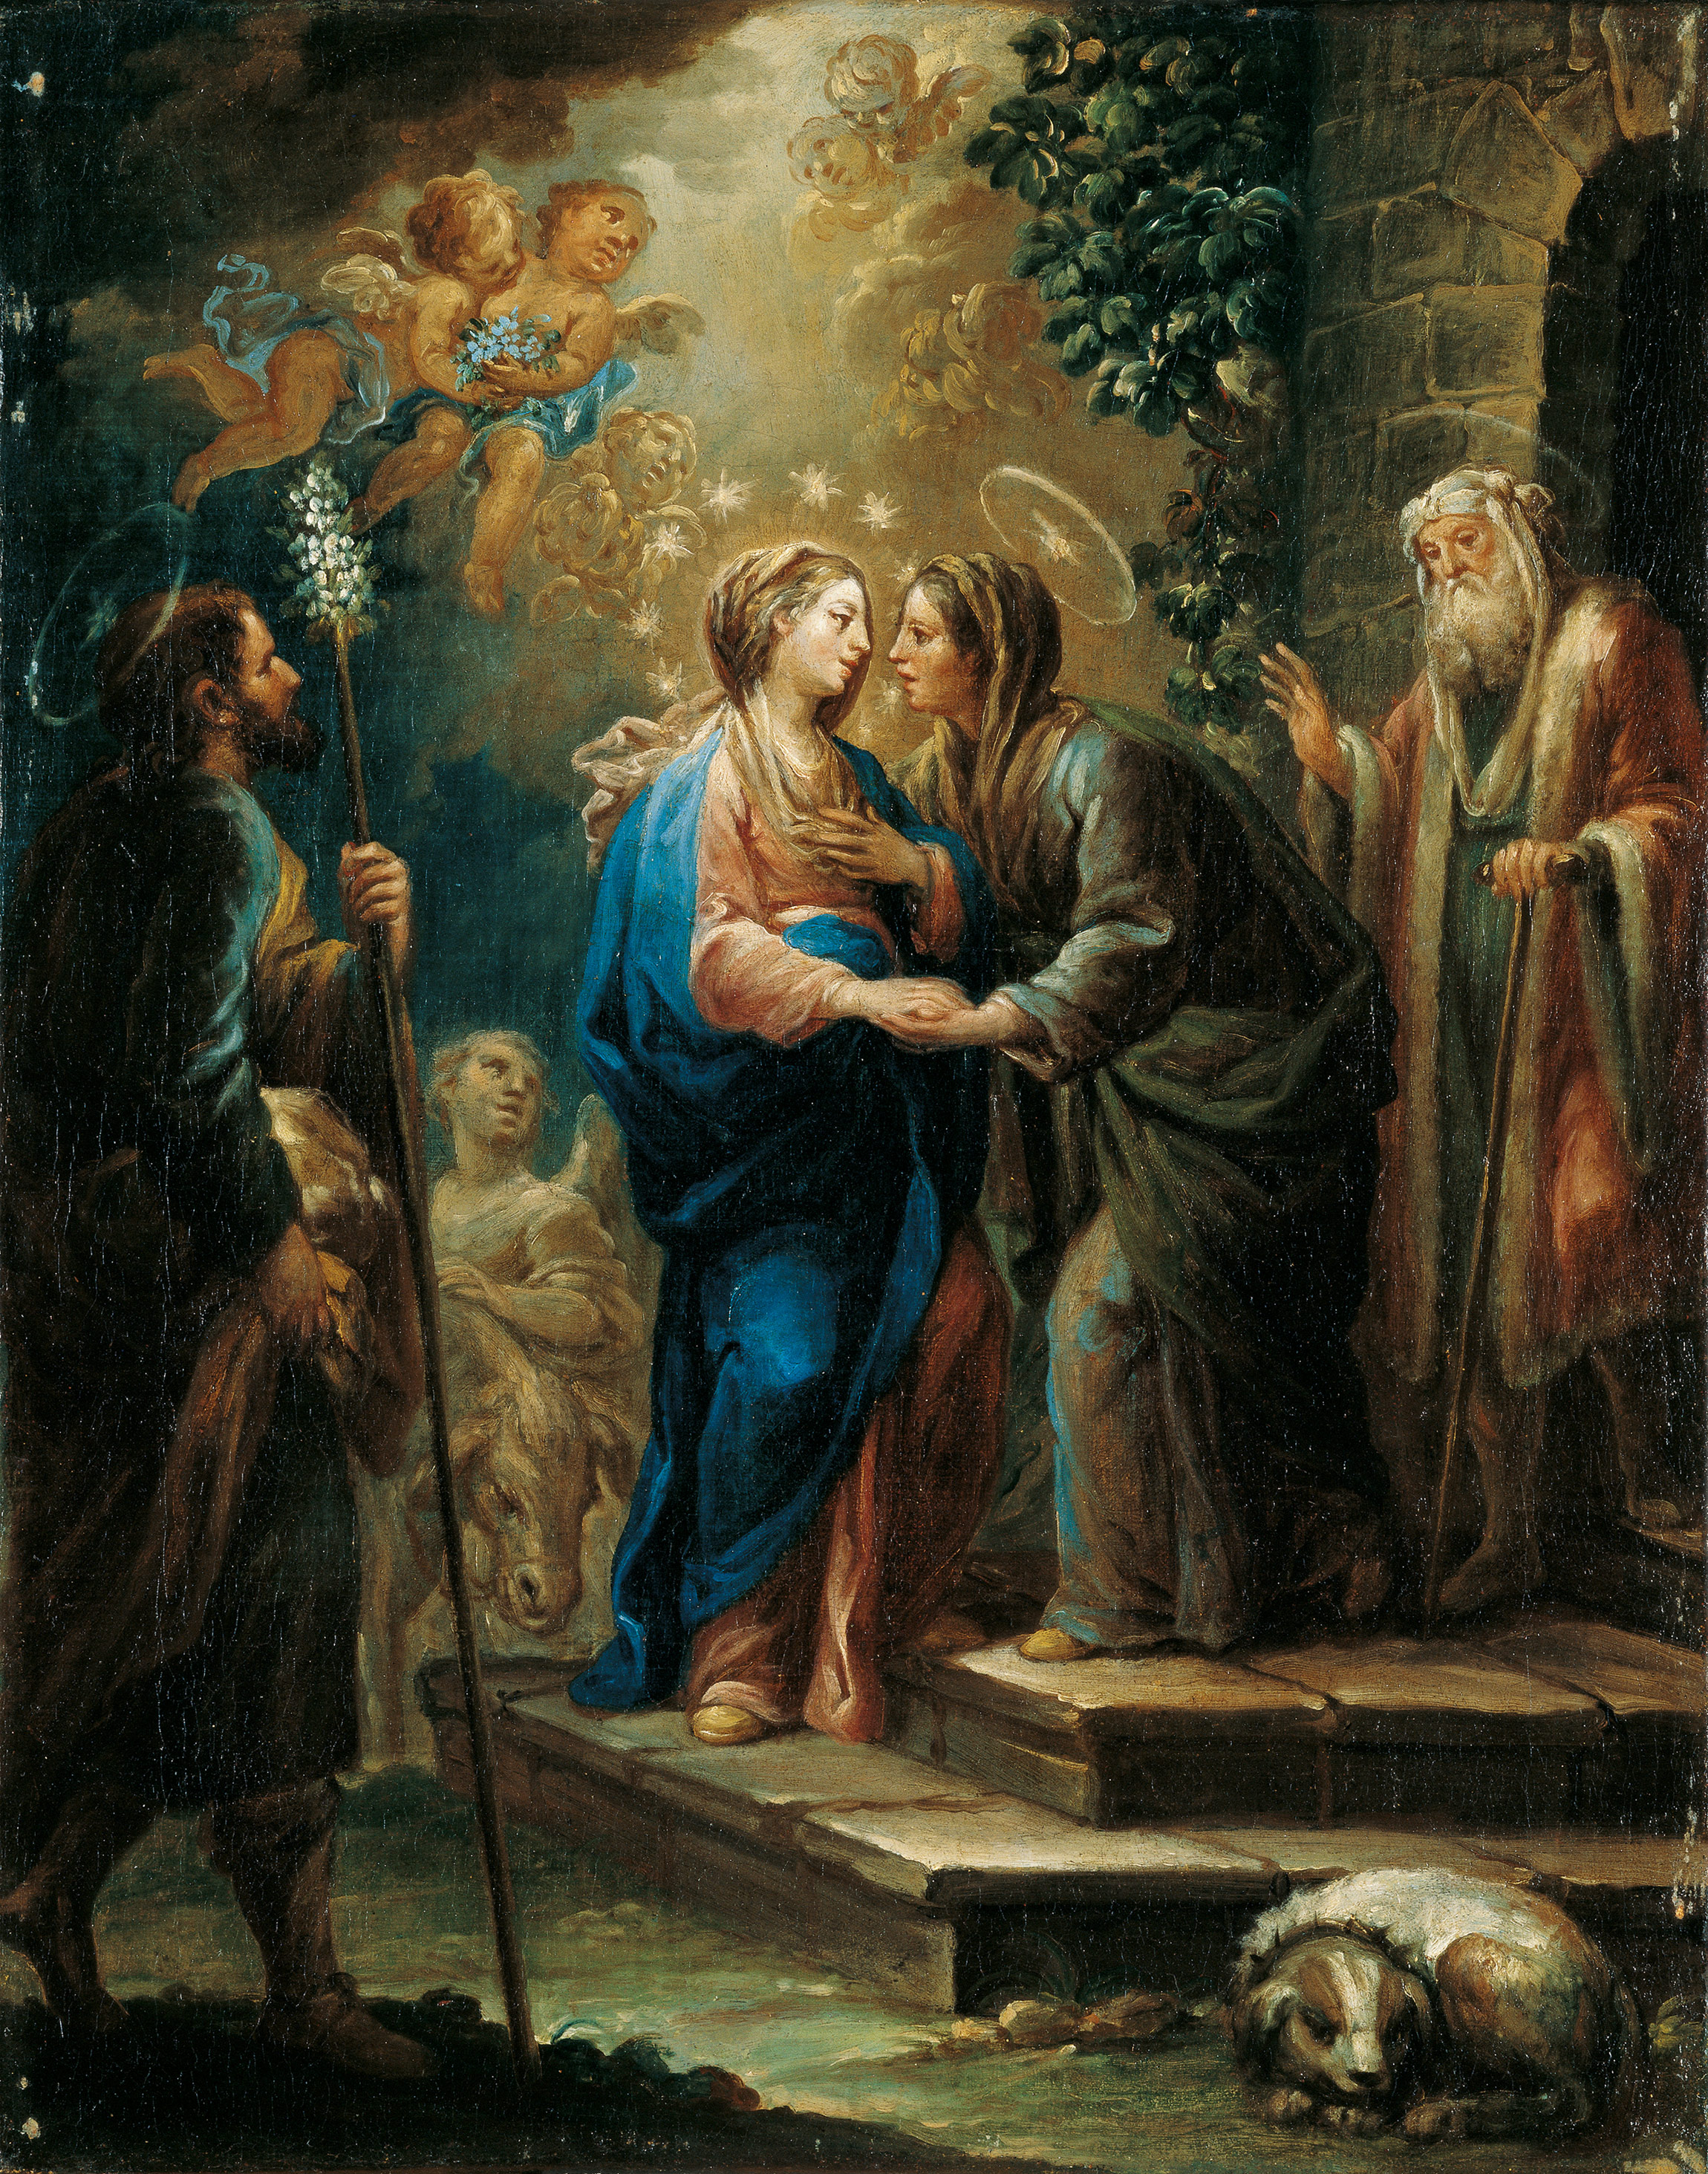 What Titles of the blessed virgin mary were